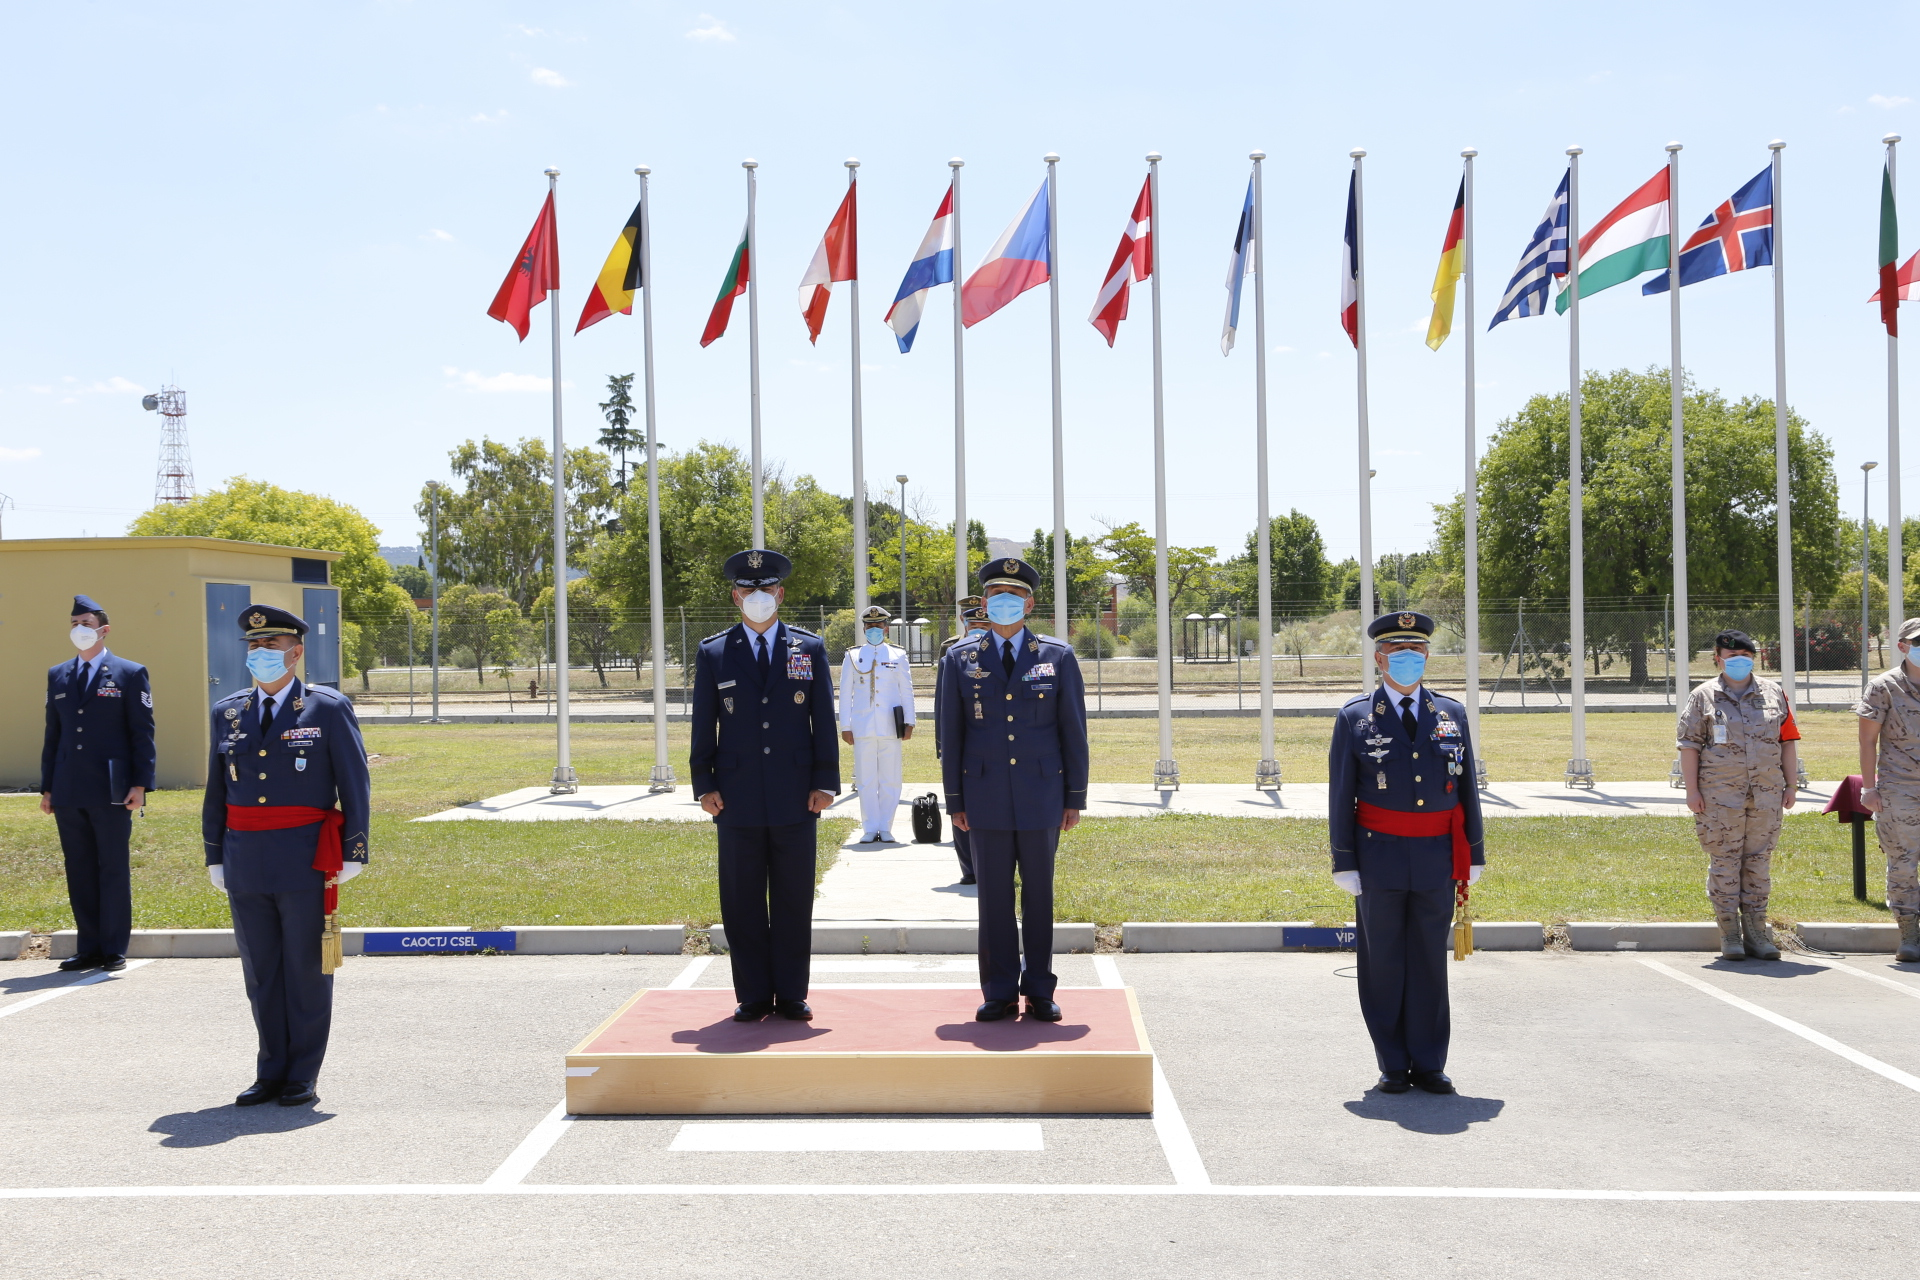 Major General Fernando de la Cruz Caravaca takes command of CAOC TJ